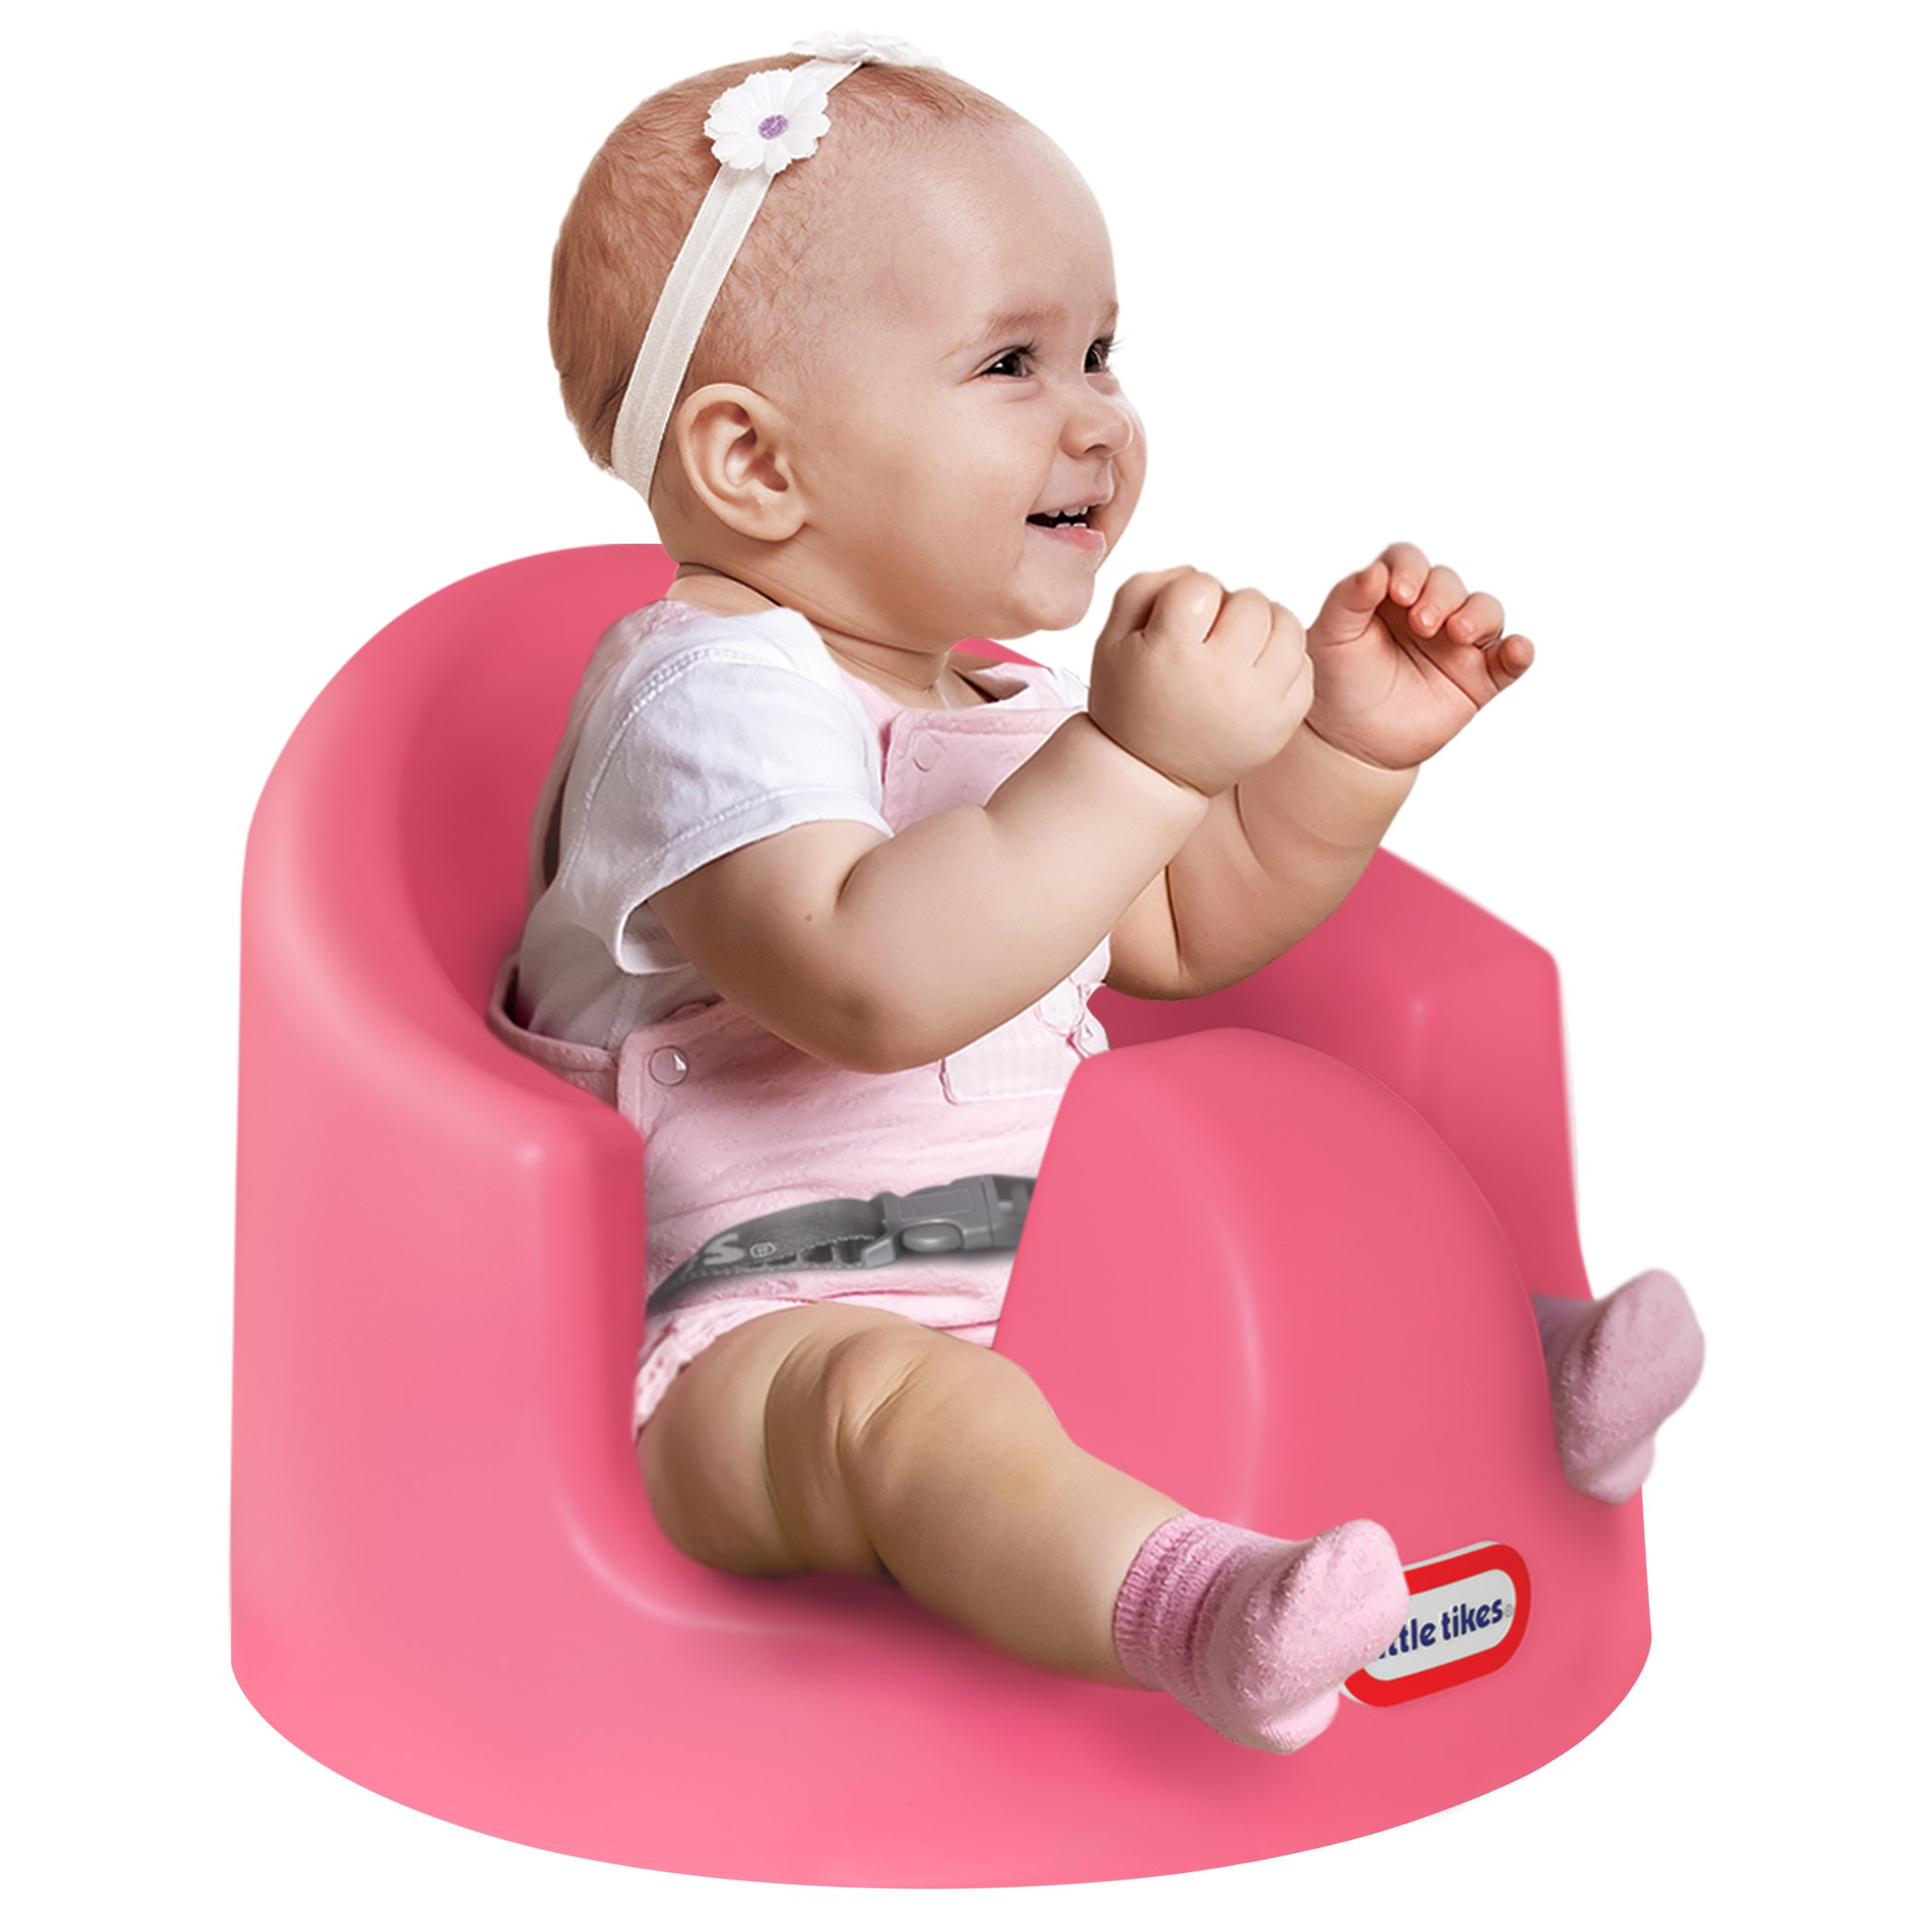 Little Tikes My First Seat Baby Infant Foam Up Right Supporting Floor Seat Pink